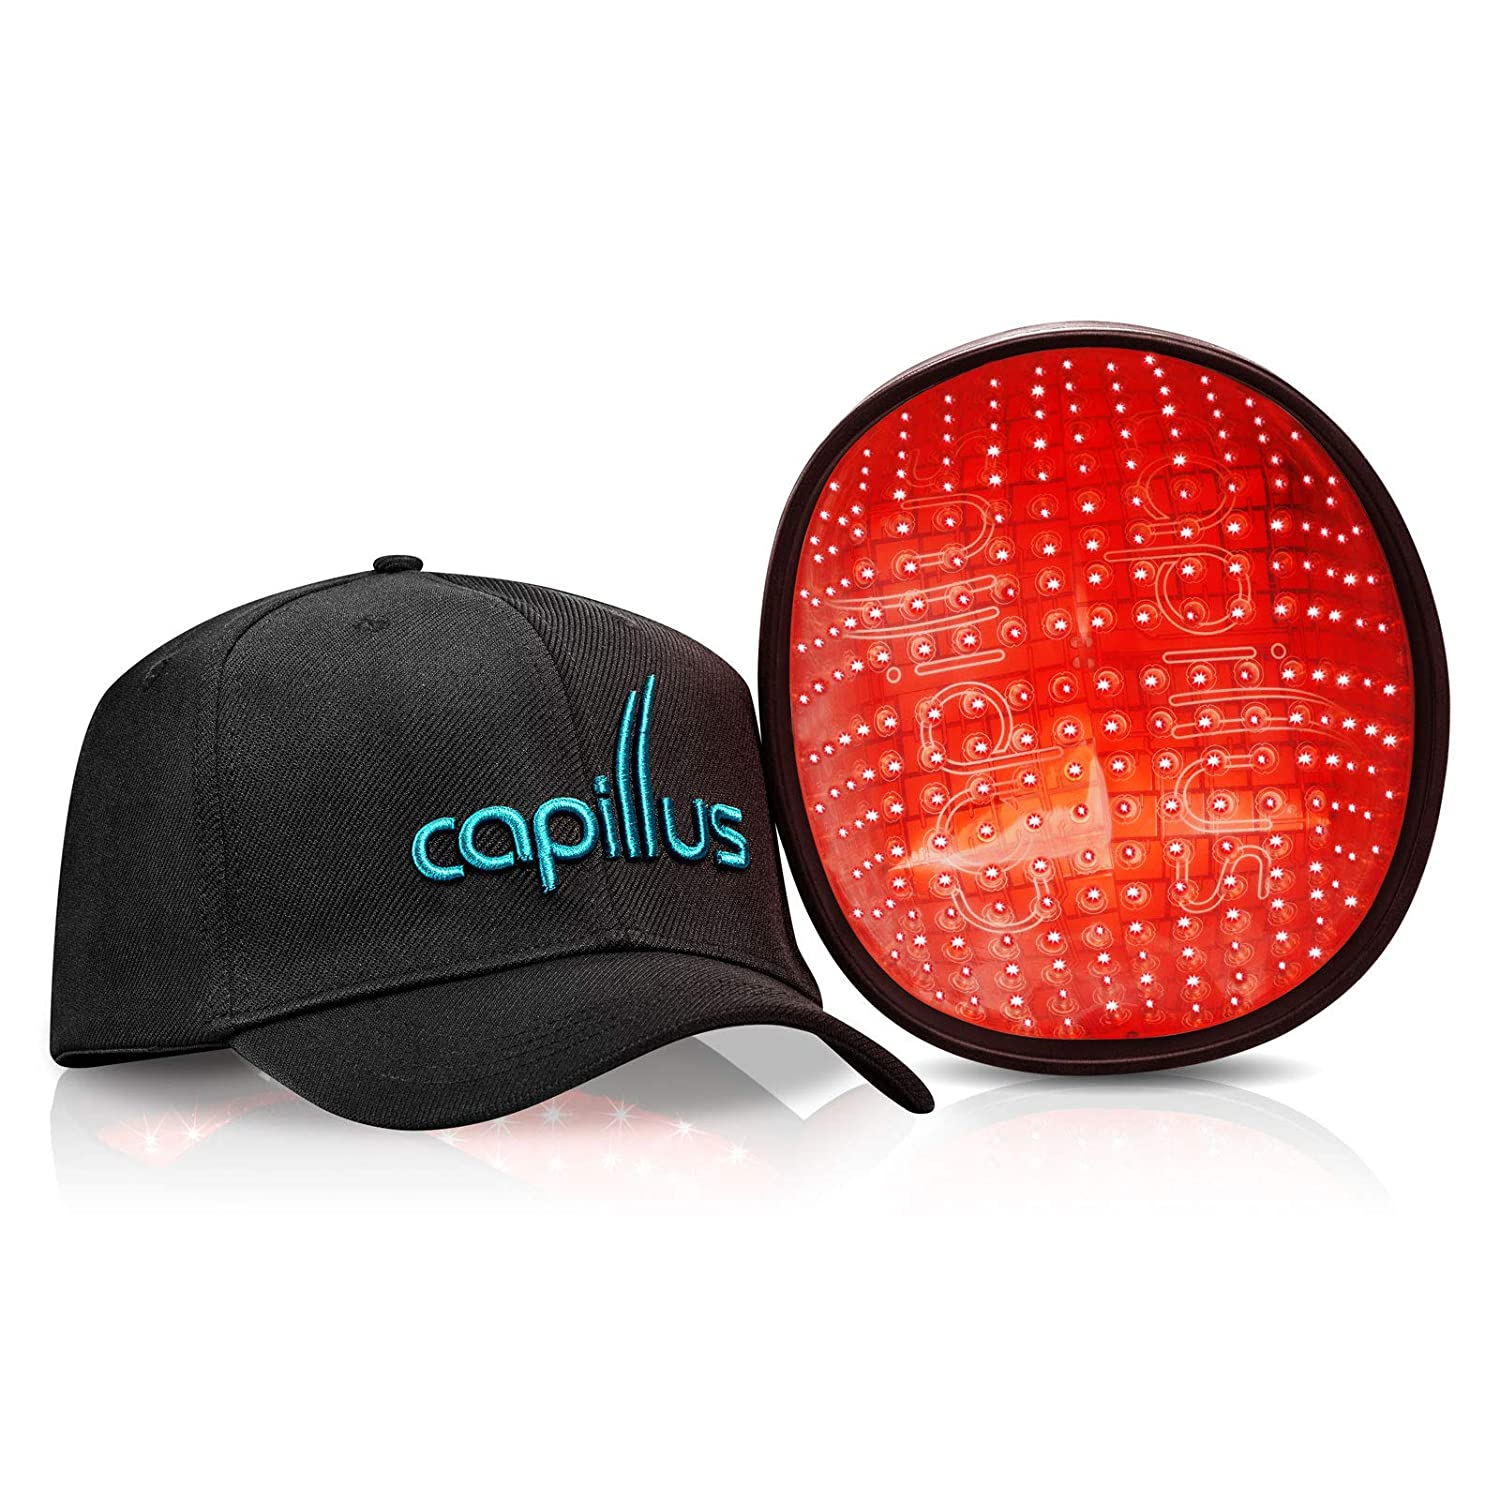 Special sale item CapillusPro Mobile Popularity Laser Therapy Cap for Regrowth Hair 6 M NEW –